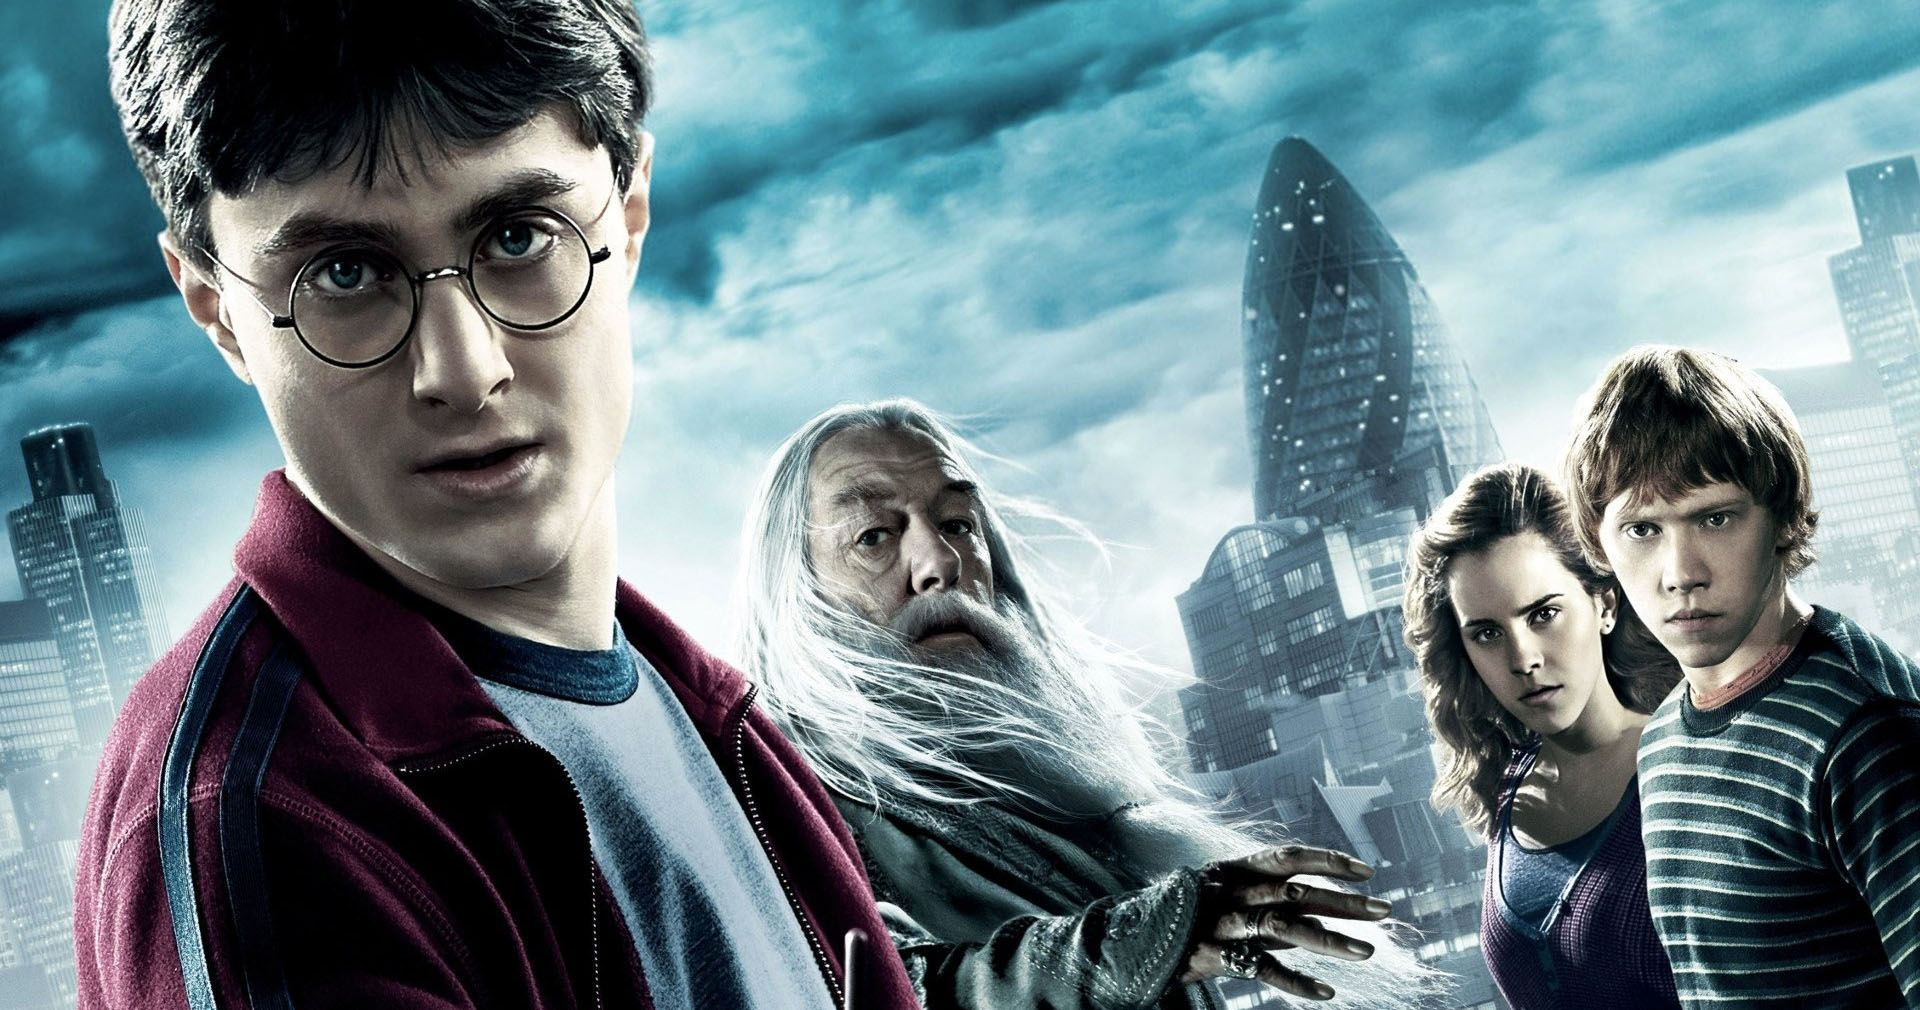 Which Hogwarts House Are You In Based On Your Favorite Harry Potter Movie?